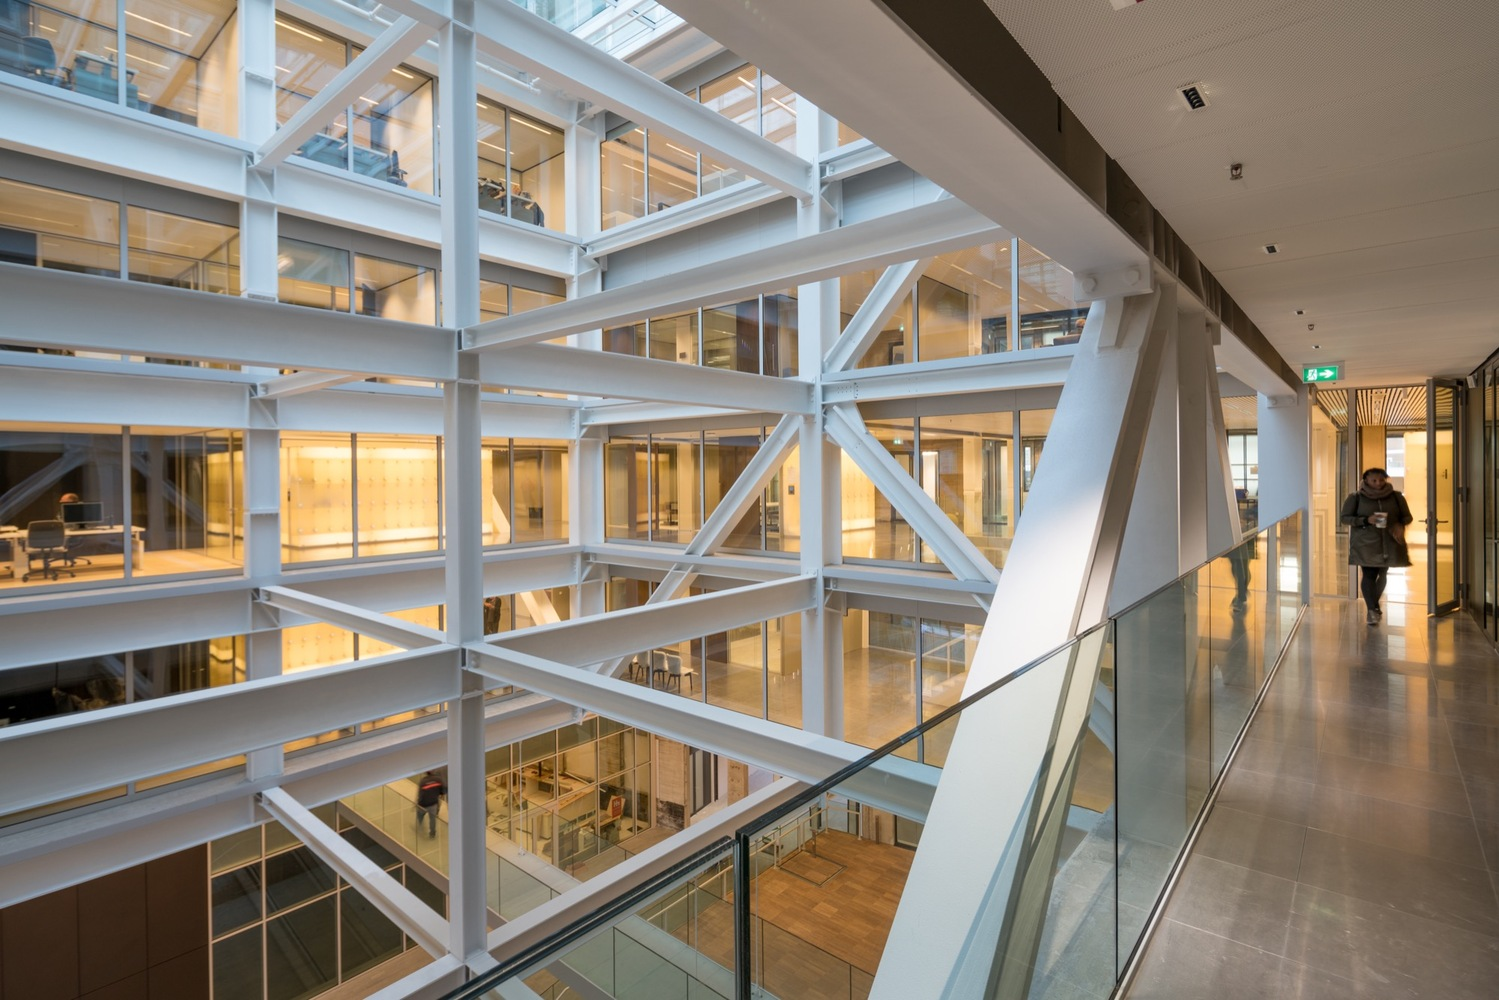 Gallery of Timmerhuis / OMA - 4